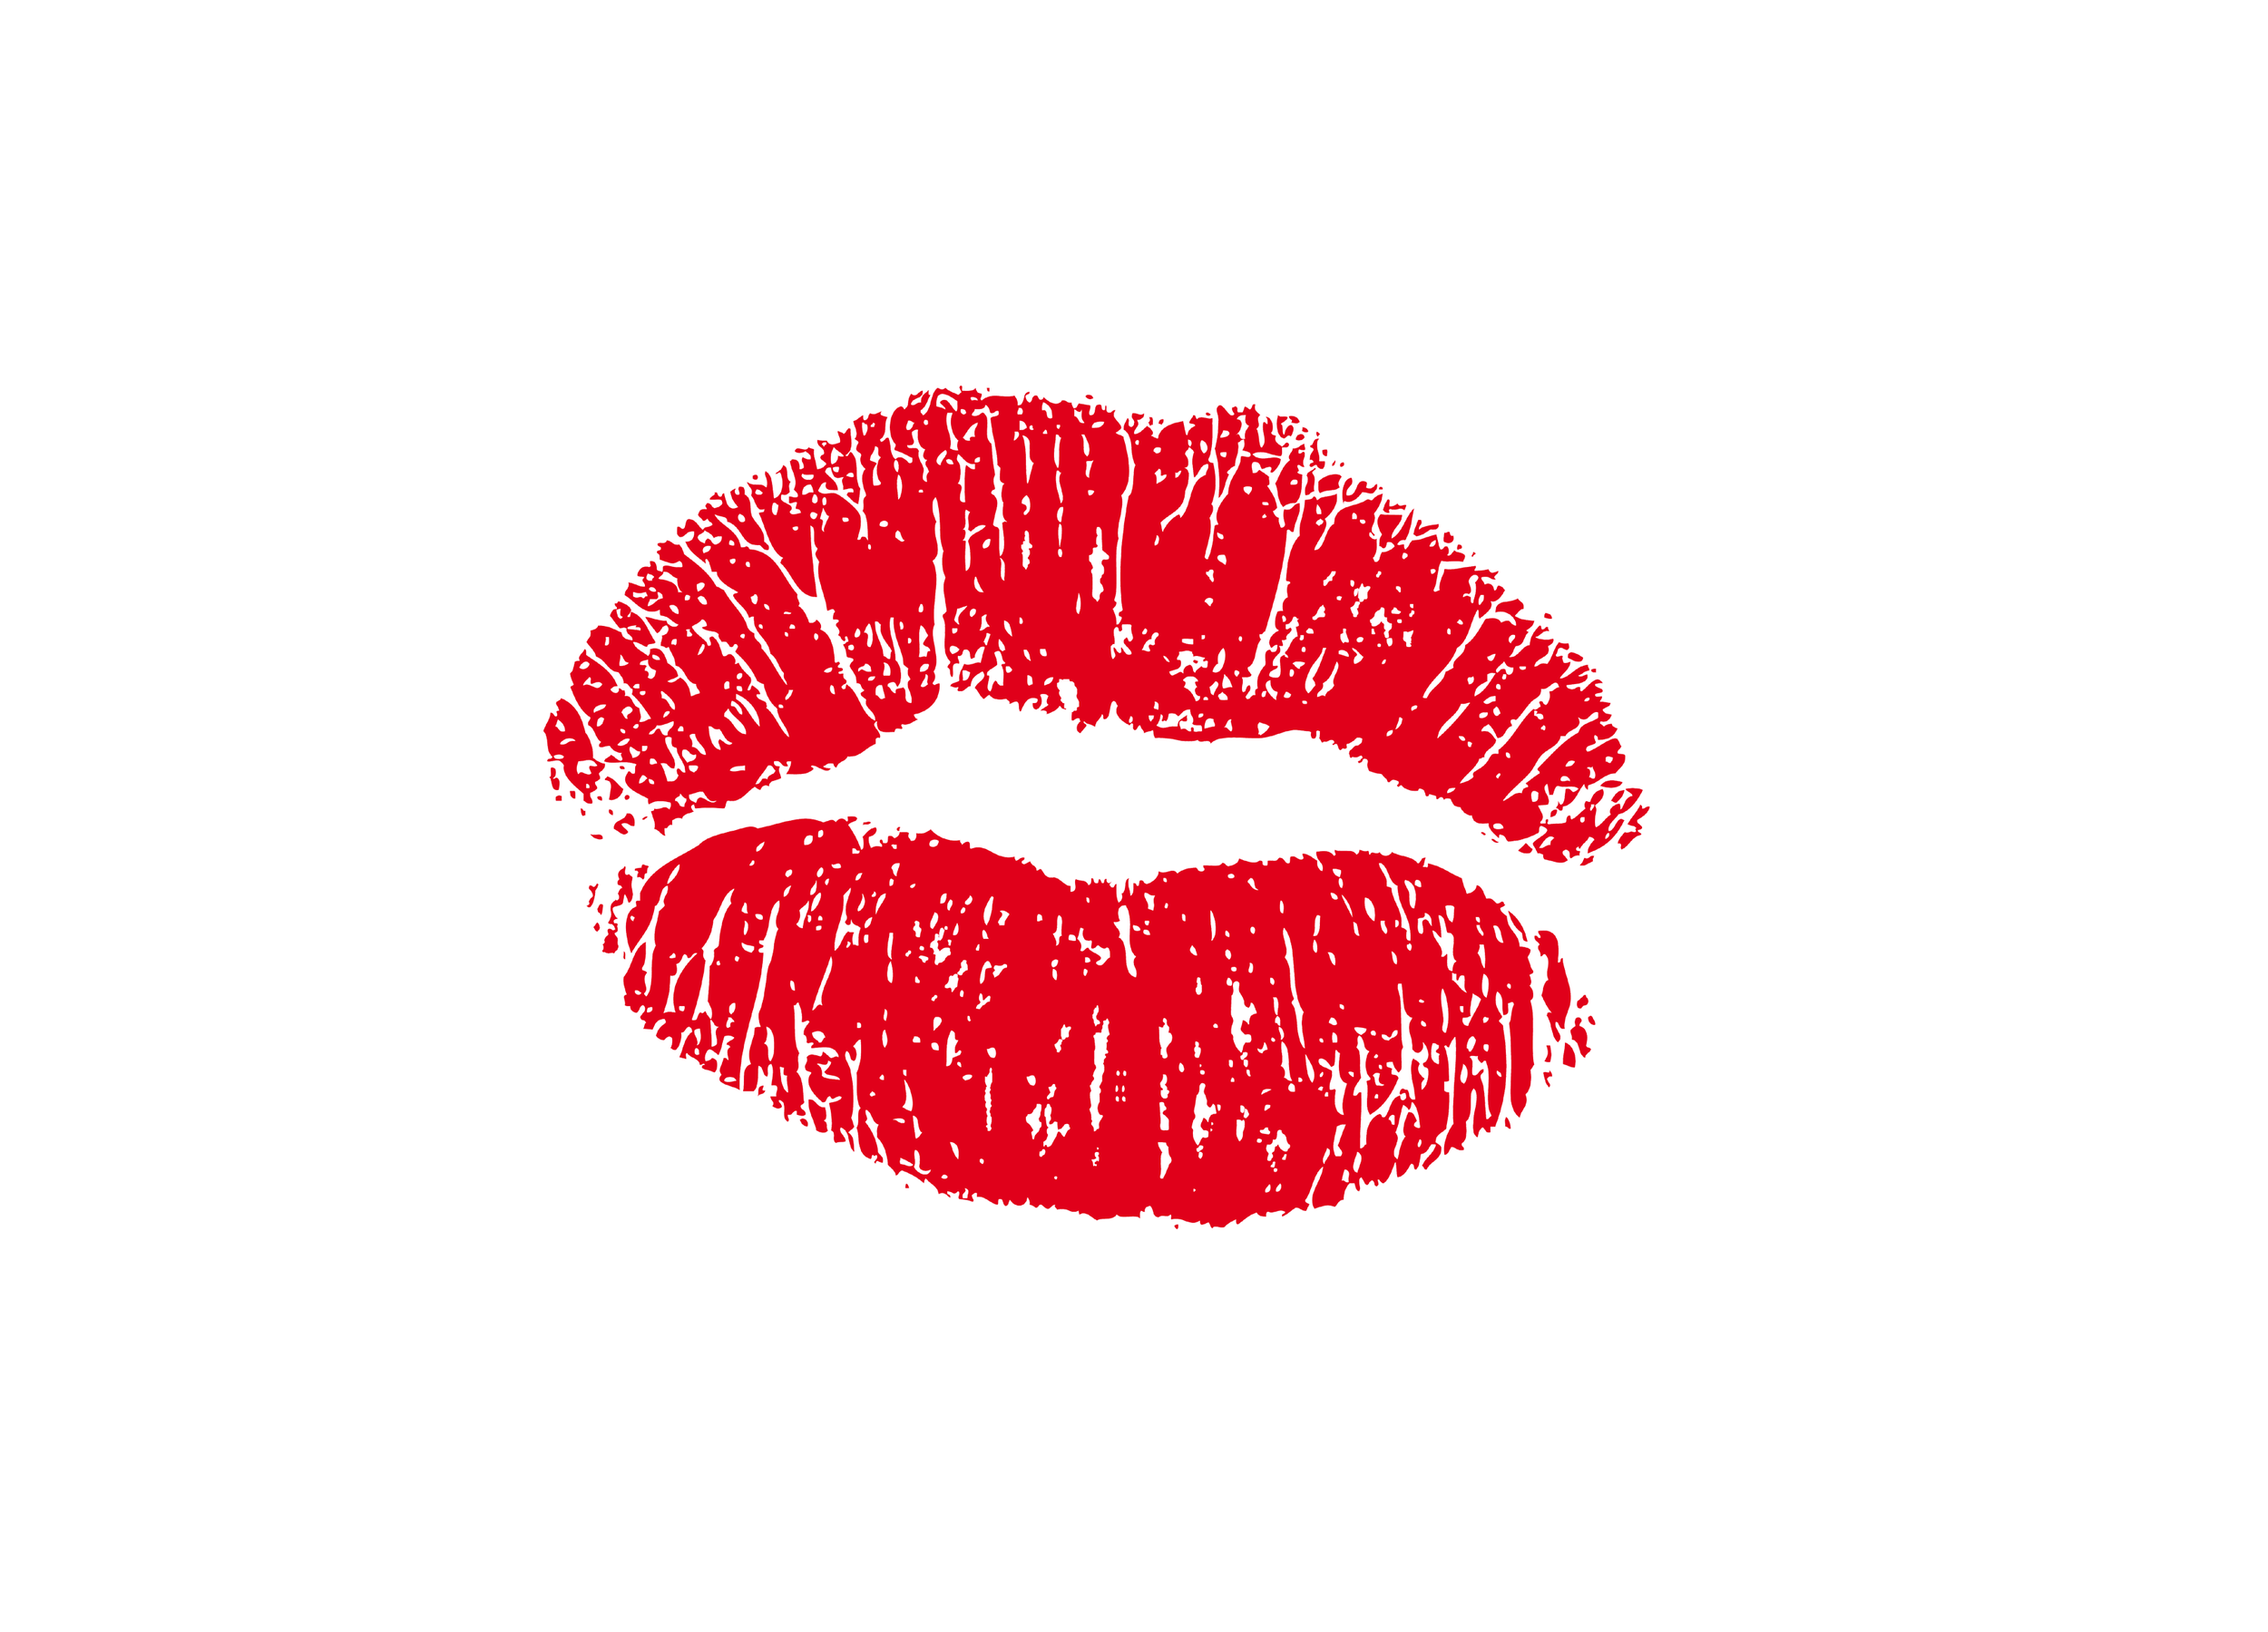 purepng.com-lips-kisslipssoftmovablemovable-human-lipskissingred-lipskiss-14215269274654zqgz.png